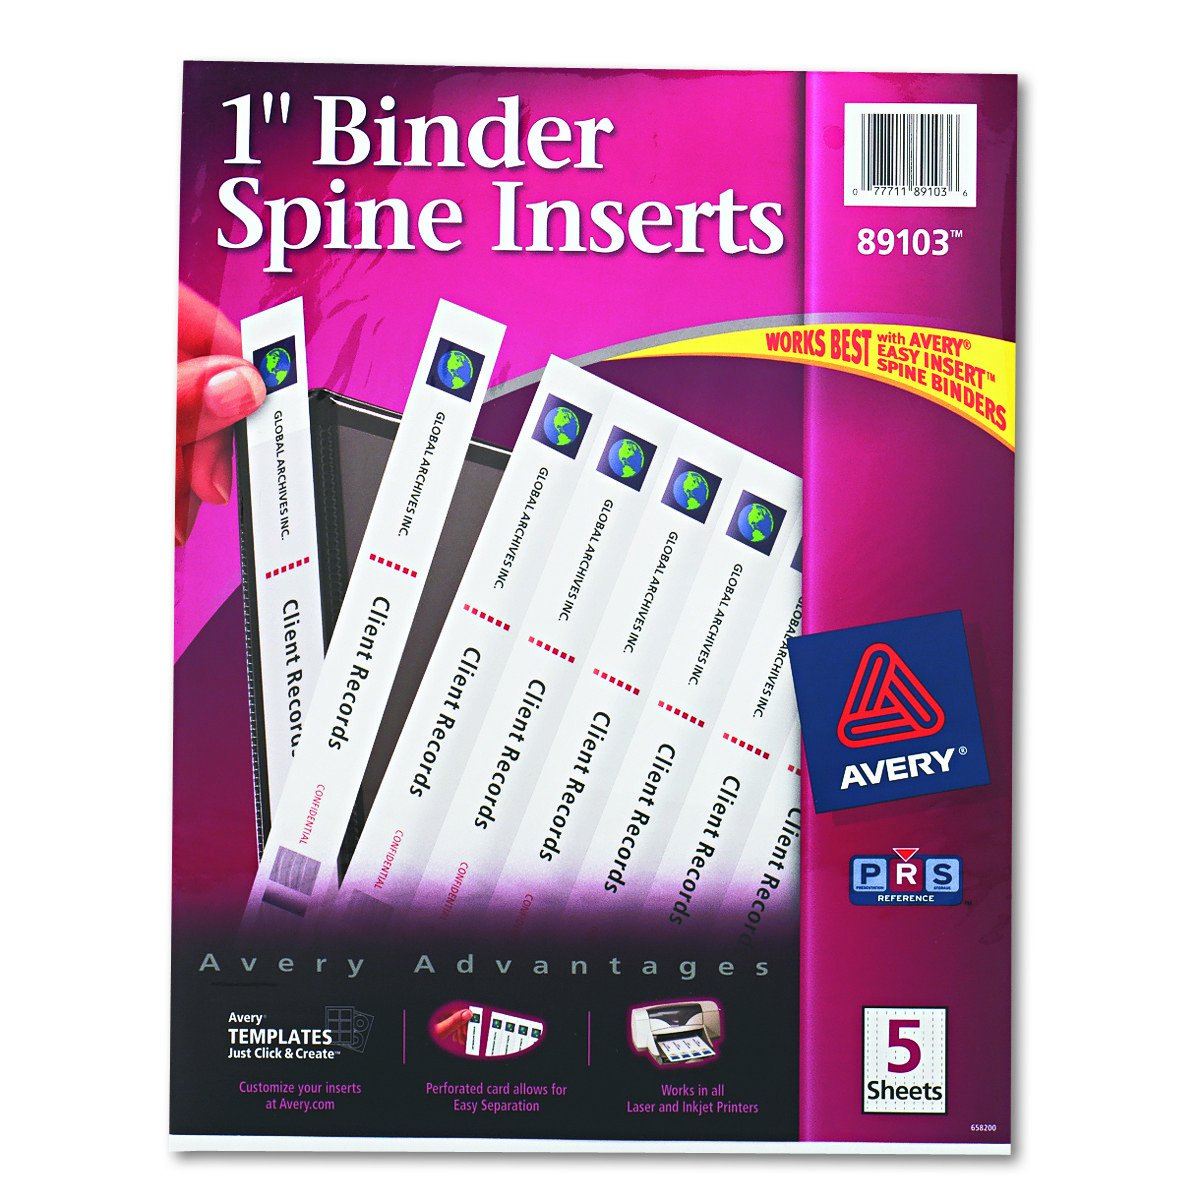 amazon com avery 89103 binder spine inserts 1 spine width 8